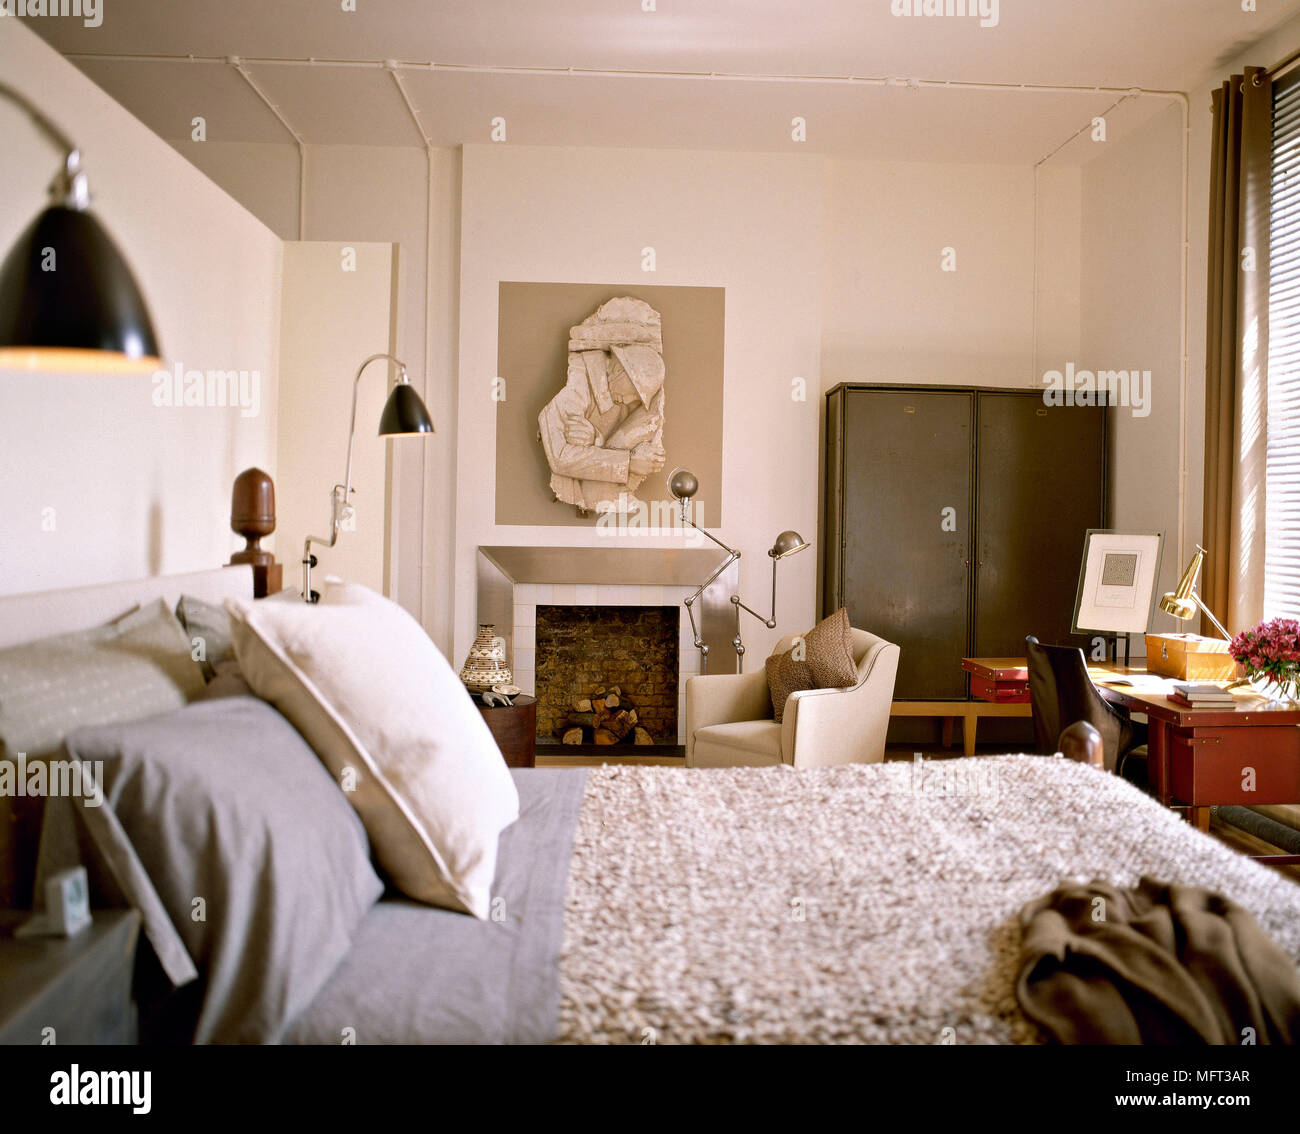 Image of: Modern Neutral Bedroom Wooden Bed Textured Cover Fireplace Metal Surround Desk Chair Interiors Bedrooms Beds Modern Masculine Sitting Area Office Ar Stock Photo Alamy